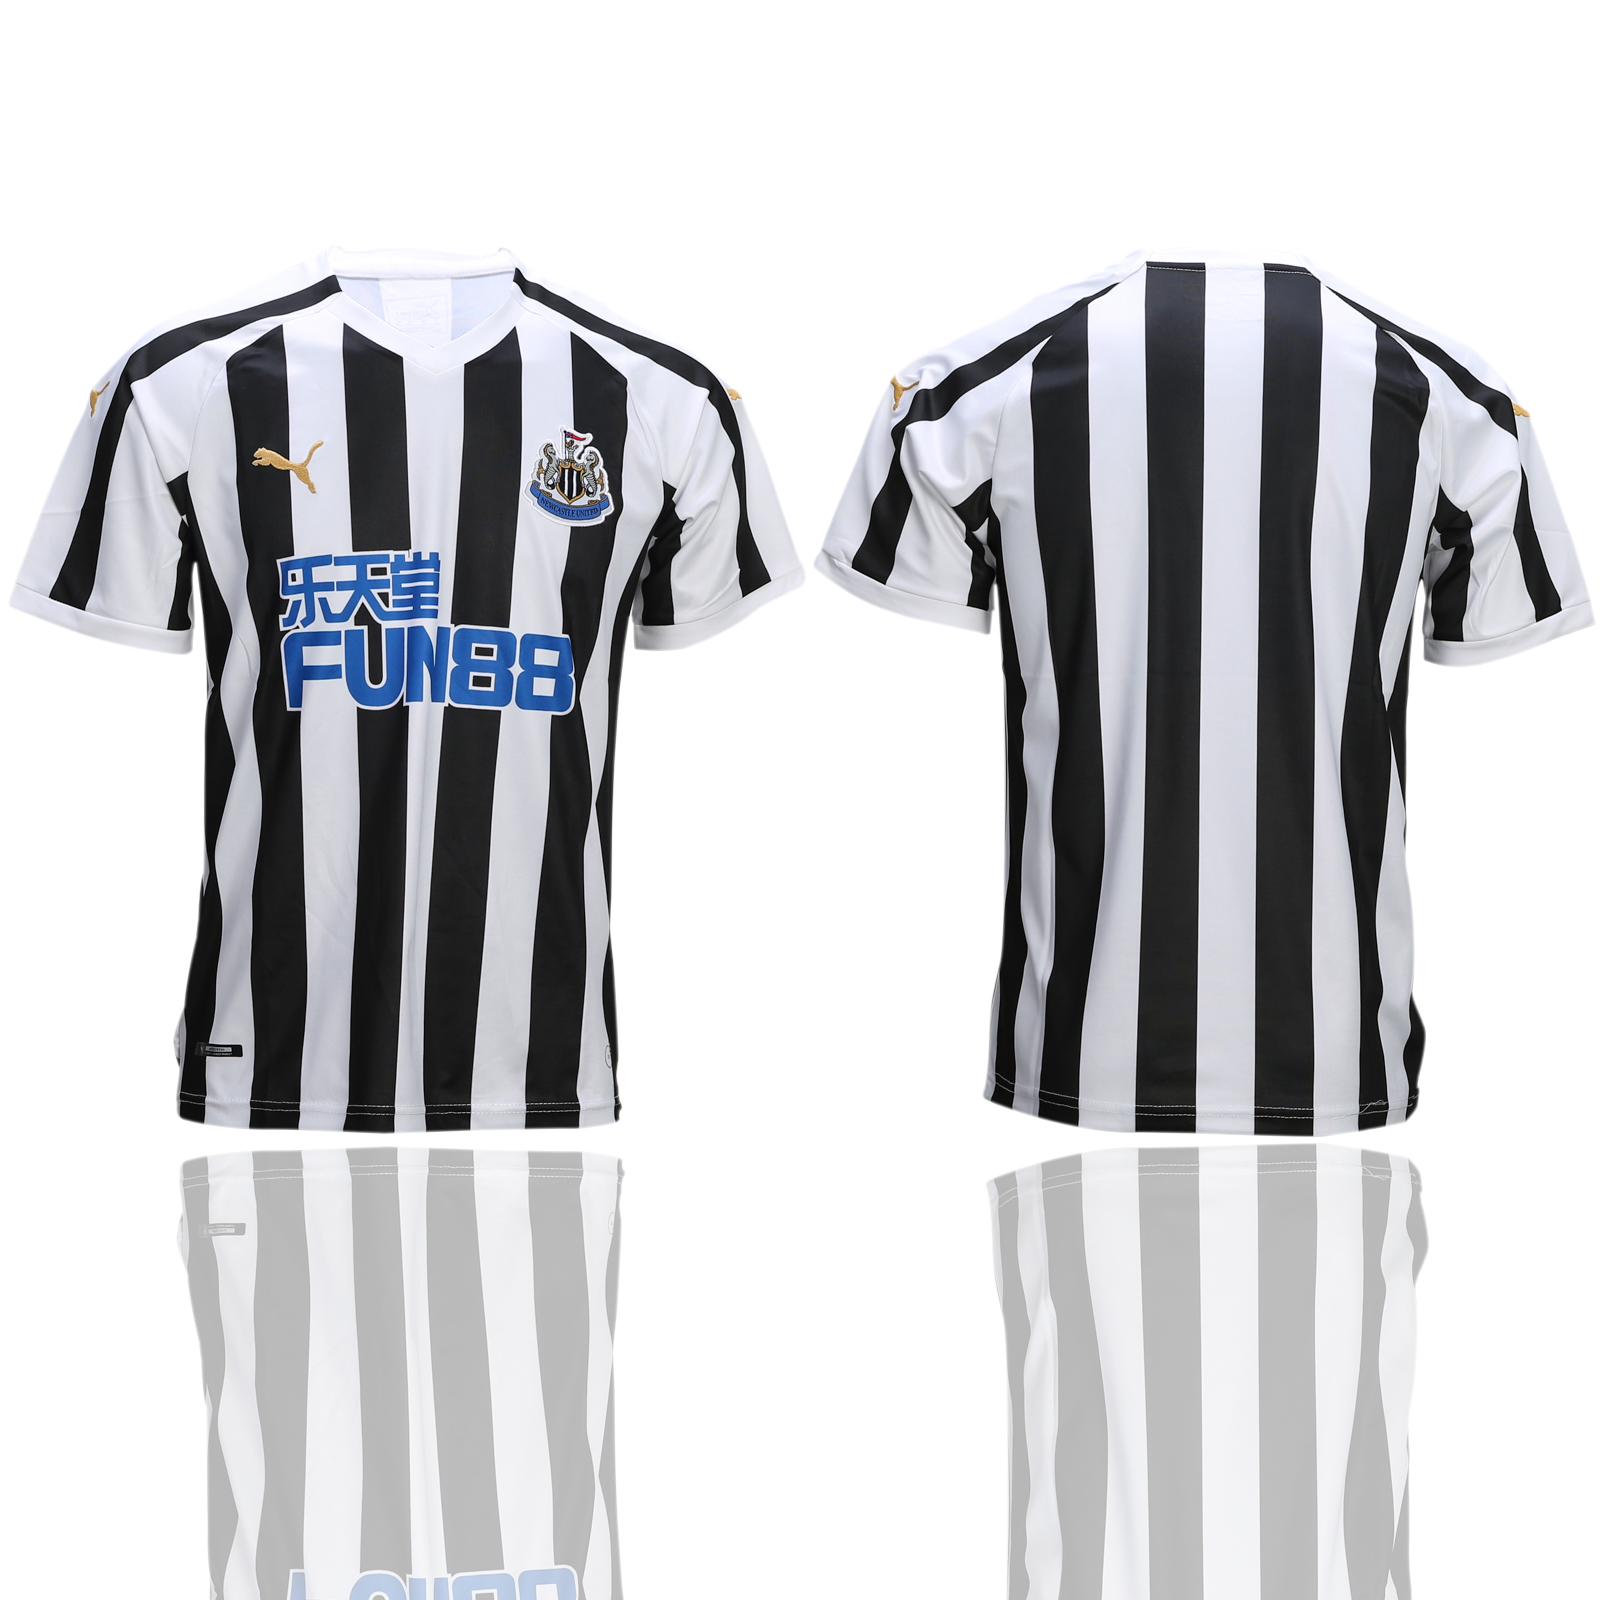 2018-19 Newcastle United Home Thailand Soccer Jersey